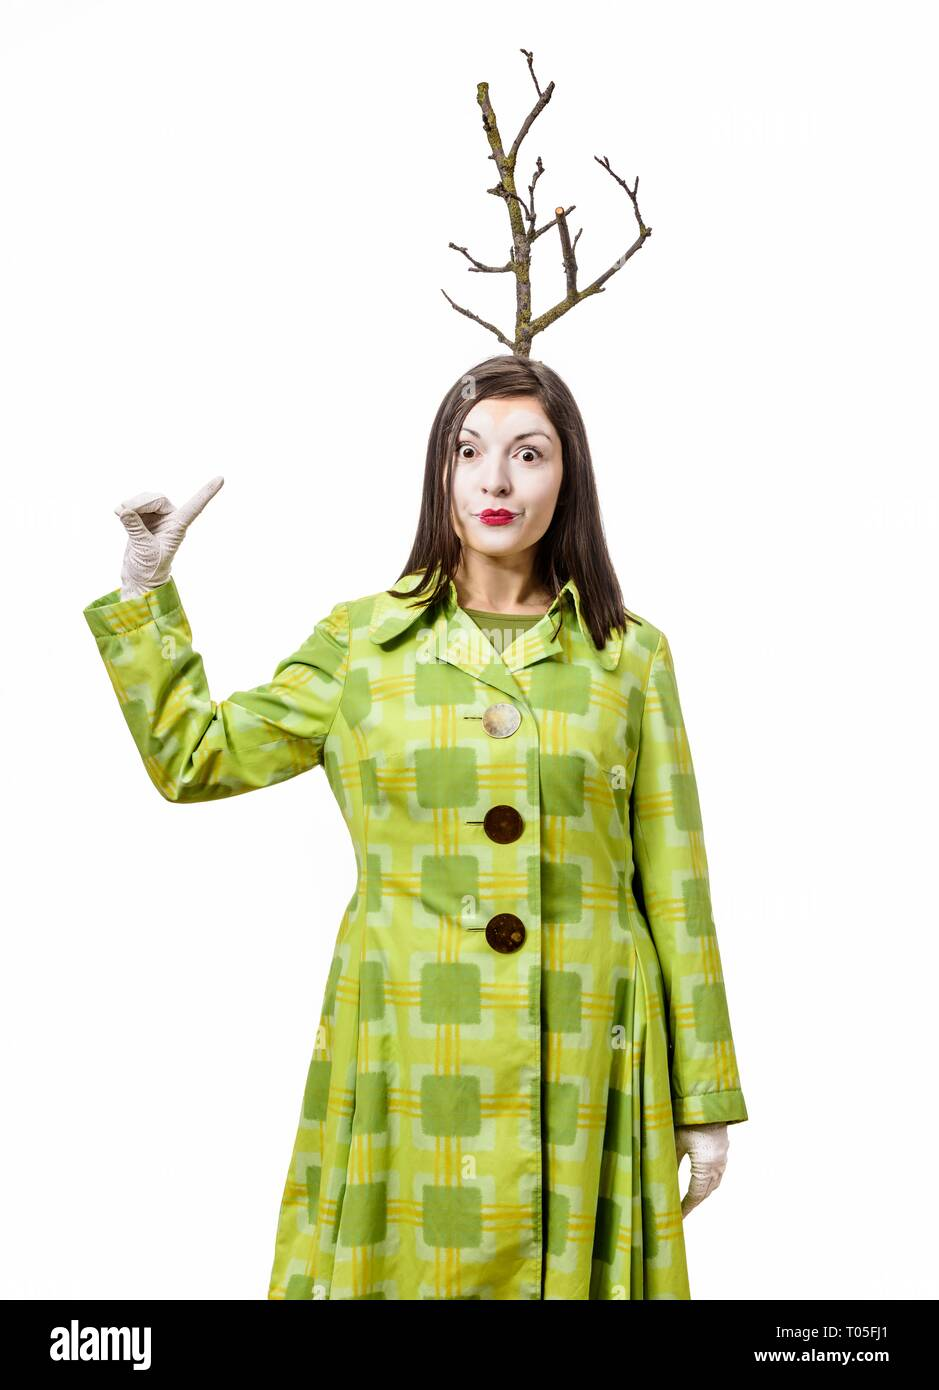 Shocked clown standing in suit and gesturing on white background. A branch grows from his head. Pointing with your finger up. - Stock Image